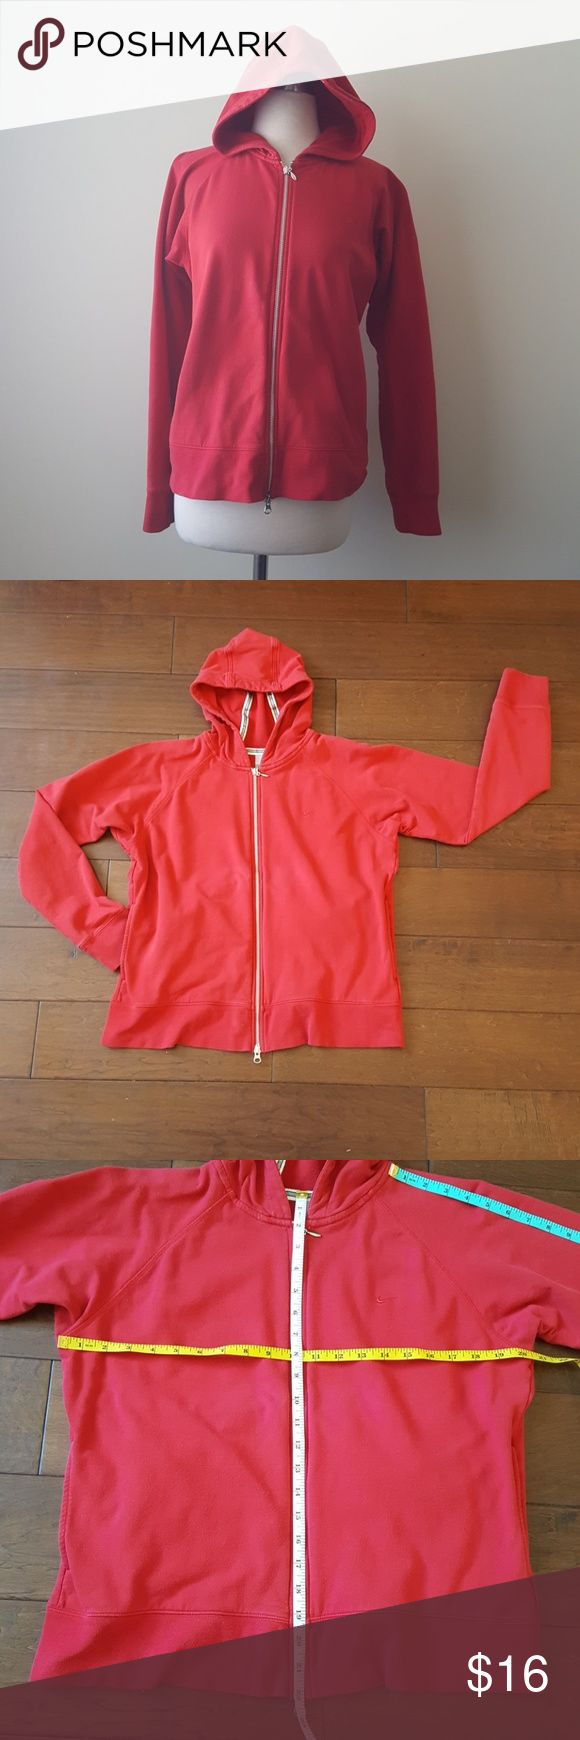 Nike Red Zip Up Hoodie Red Nike Hoodie Sweater.  95% cotton 5%Spandex. Has grey and white stripes along the inside of hoodie.  2 front pockets and Nike logo. Has light pilling and is a little bit faded from love and being washed. Nike Sweaters